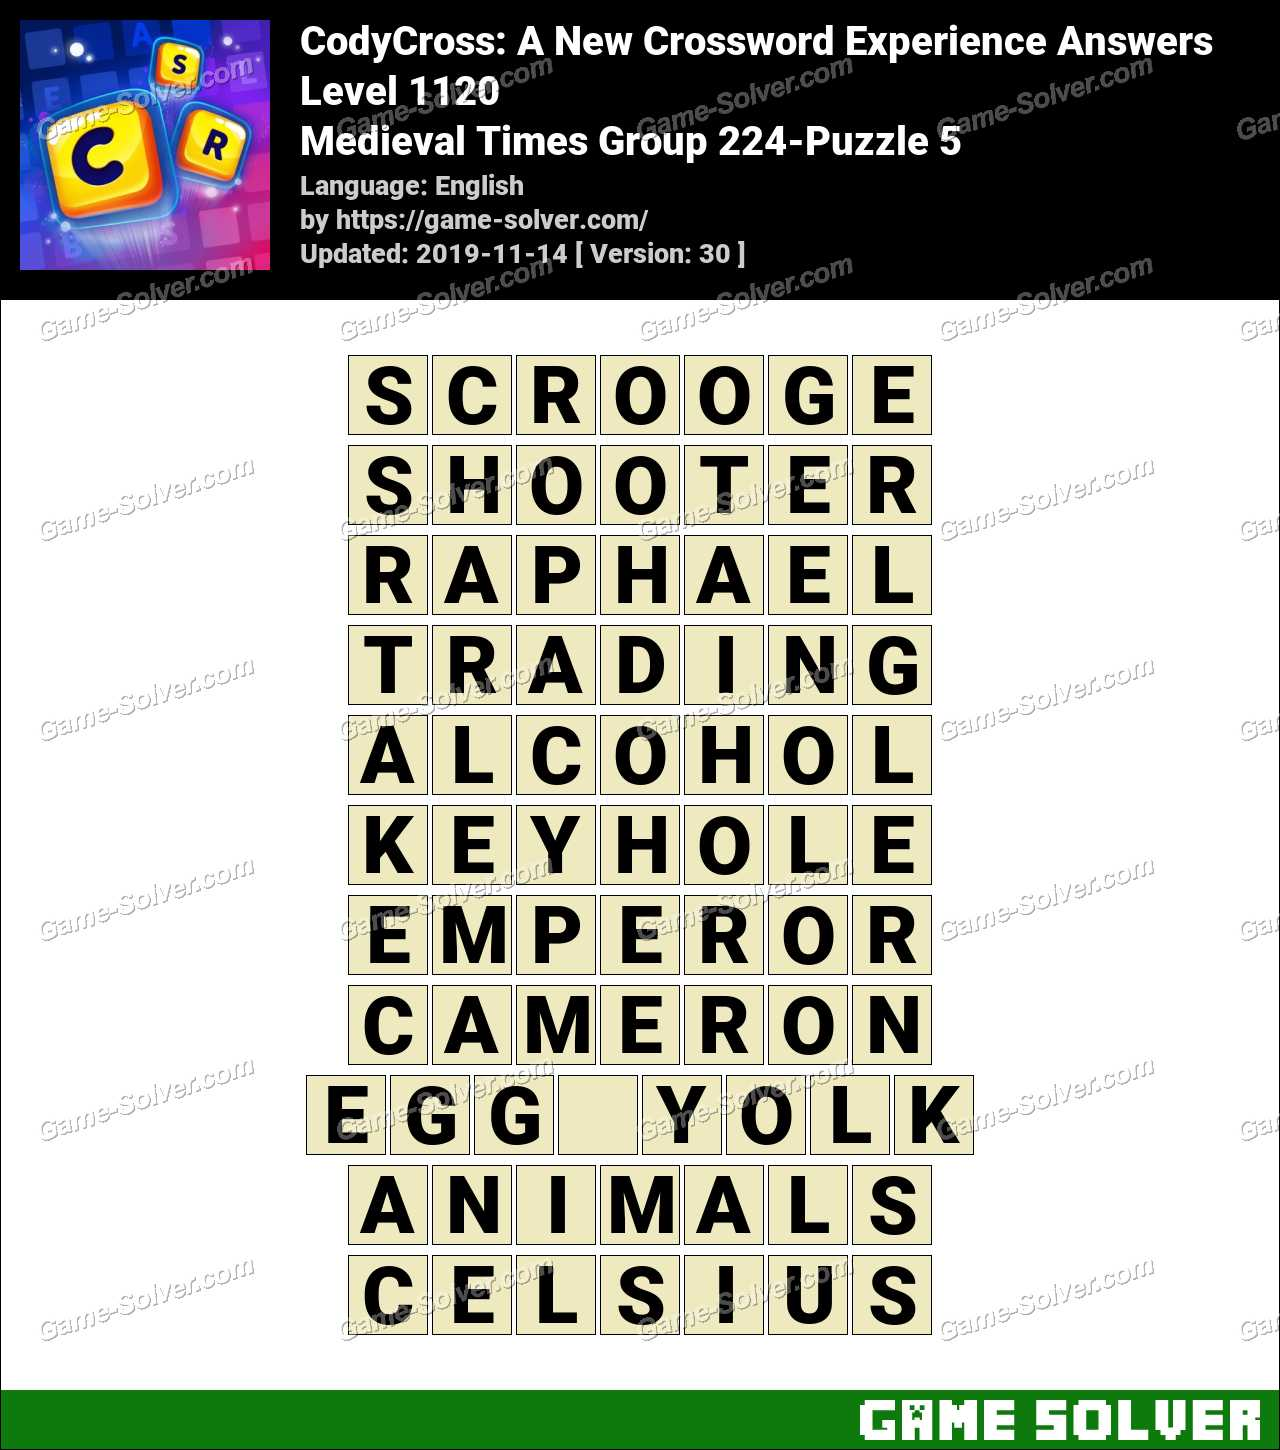 CodyCross Medieval Times Group 224-Puzzle 5 Answers